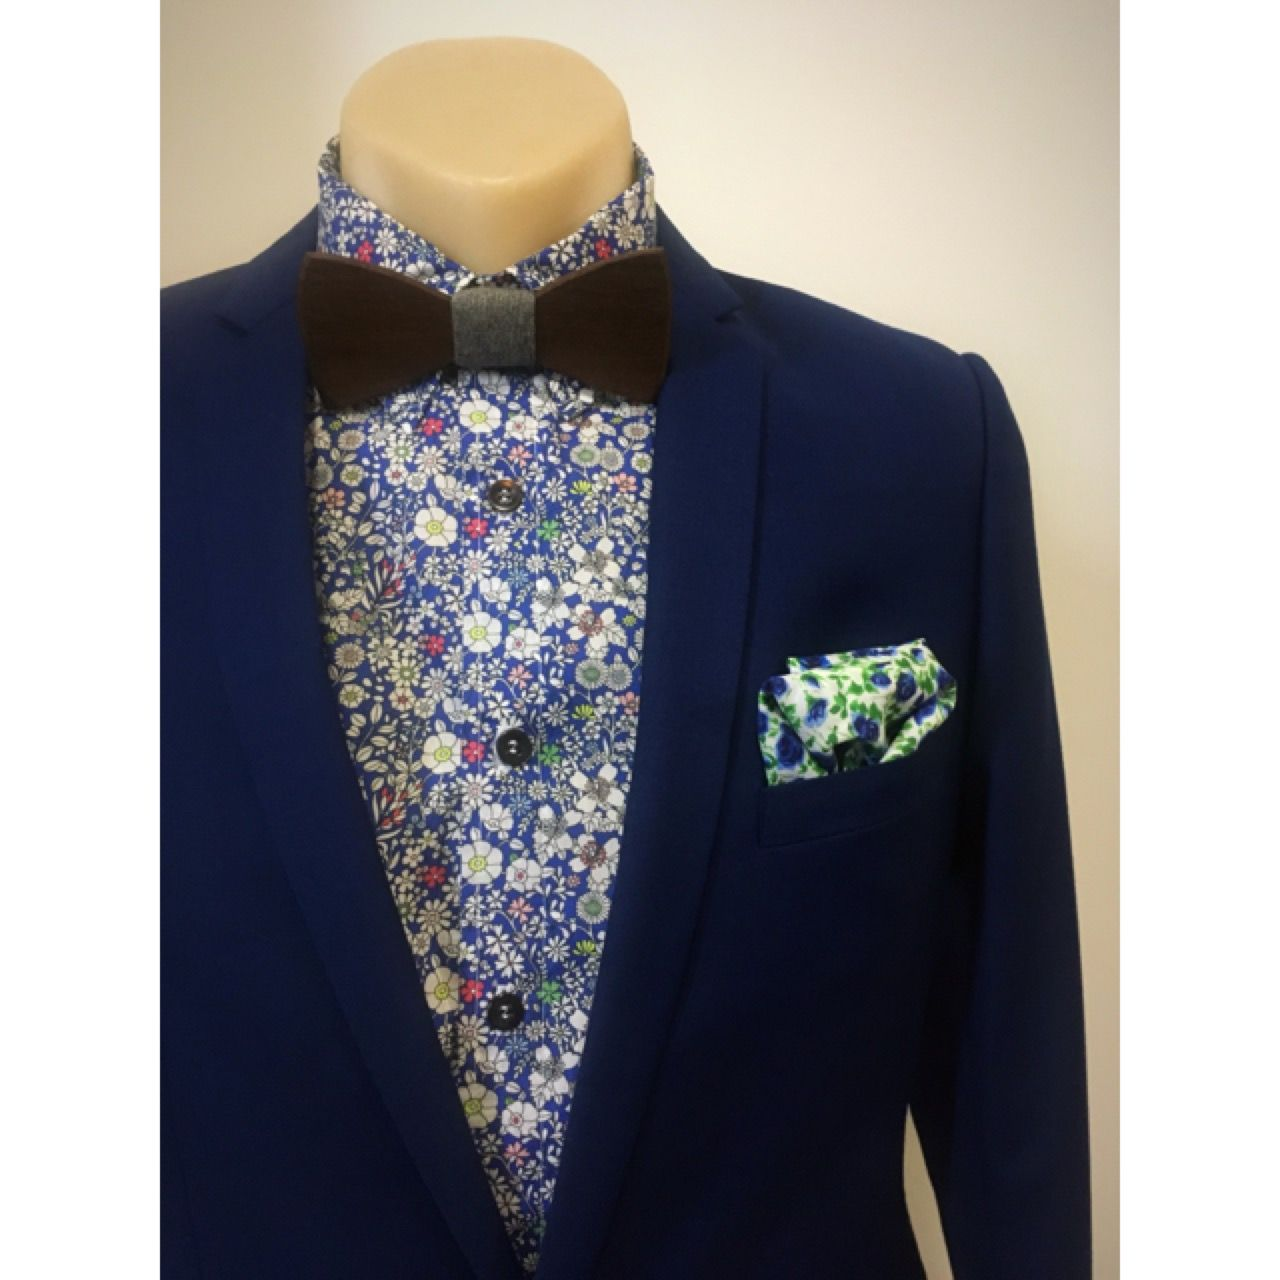 Roasted Blackbutt Wooden Bow Tie Paired With A Liberty Shirt By Windsor And Ties On Pinterest Lane